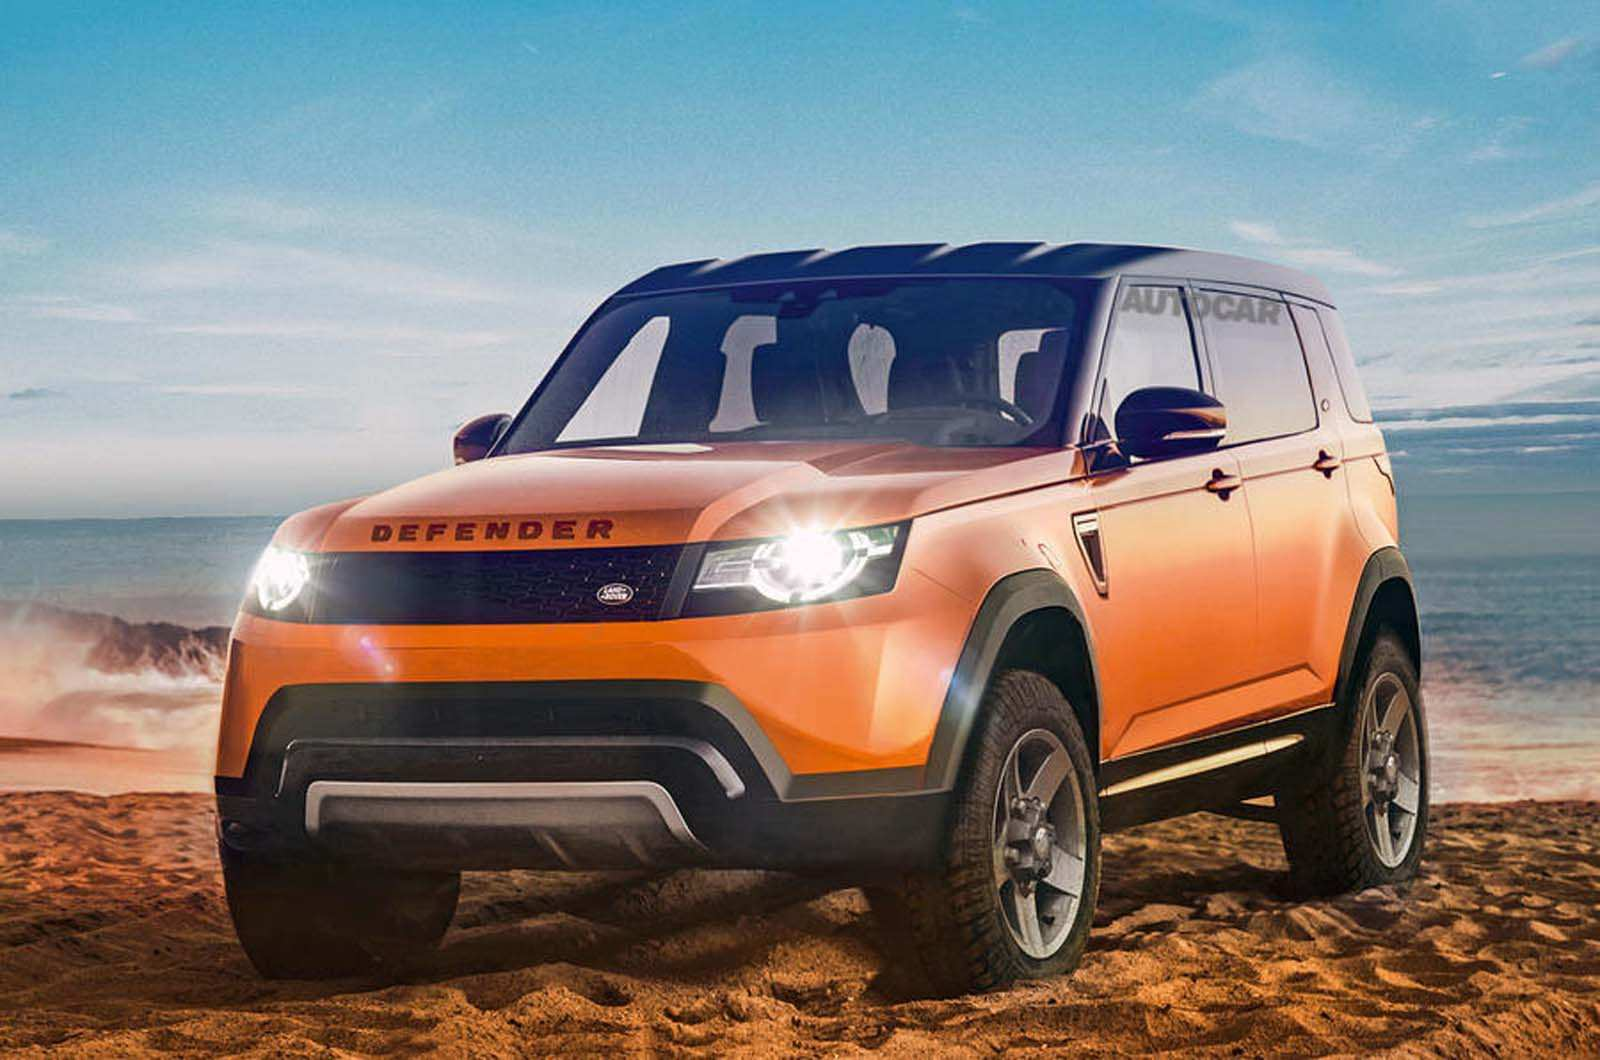 79 New 2019 Land Rover Freelander 3 Images by 2019 Land Rover Freelander 3